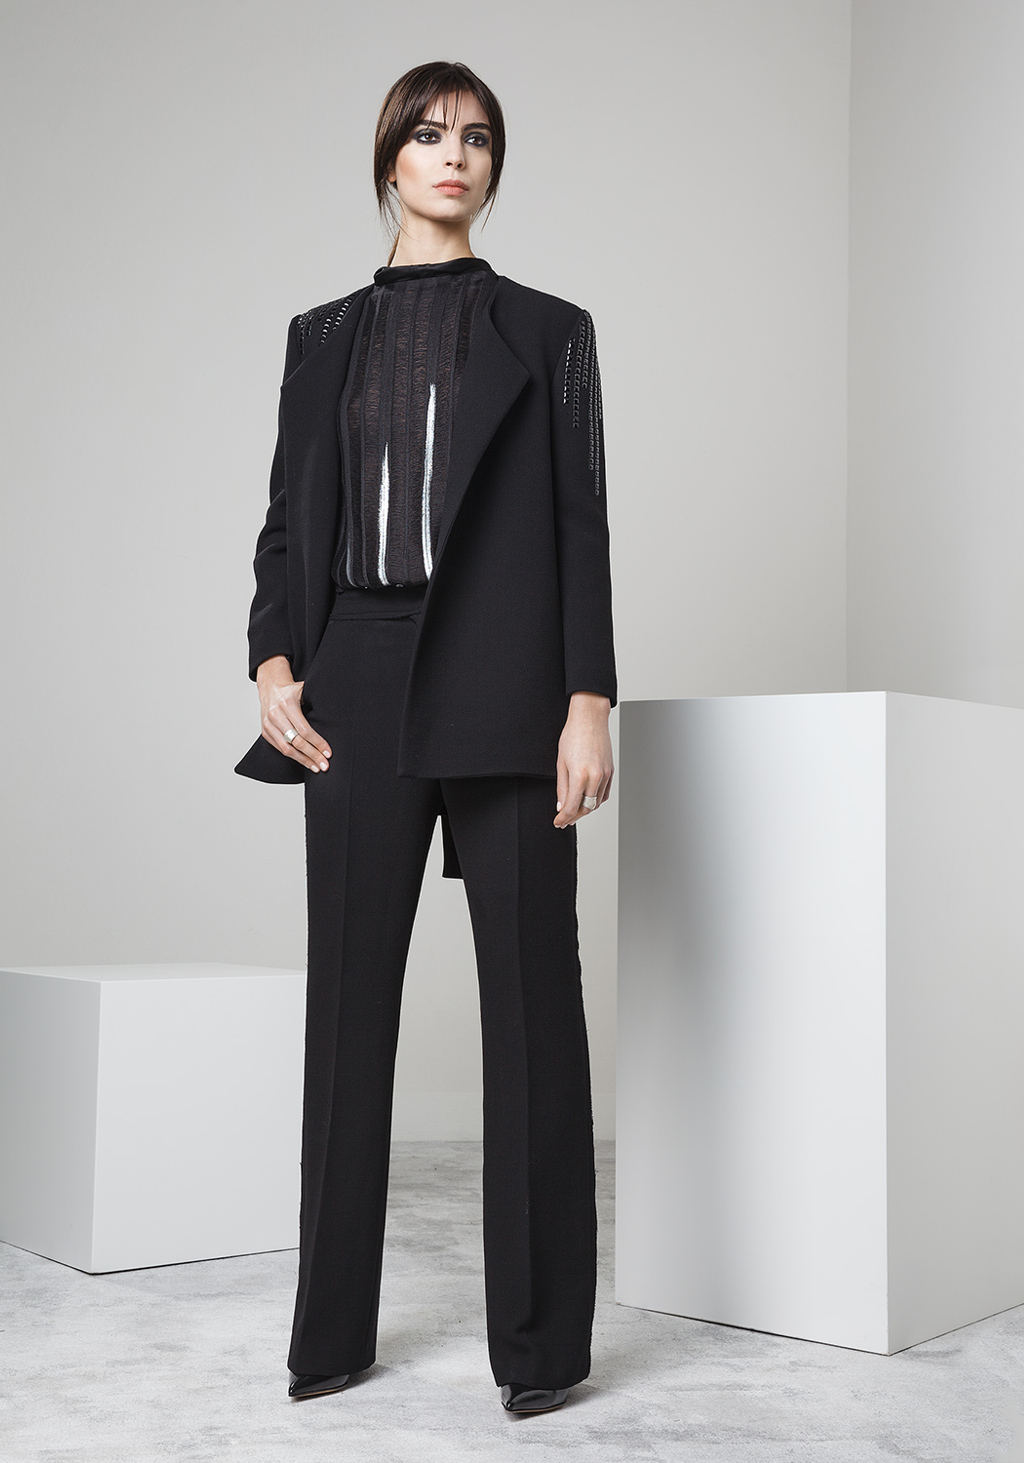 Double crepe jacket with black brillant studs - Knitted merinos wool and silver painted back tshirt - Double crepe bell bottoms trousers